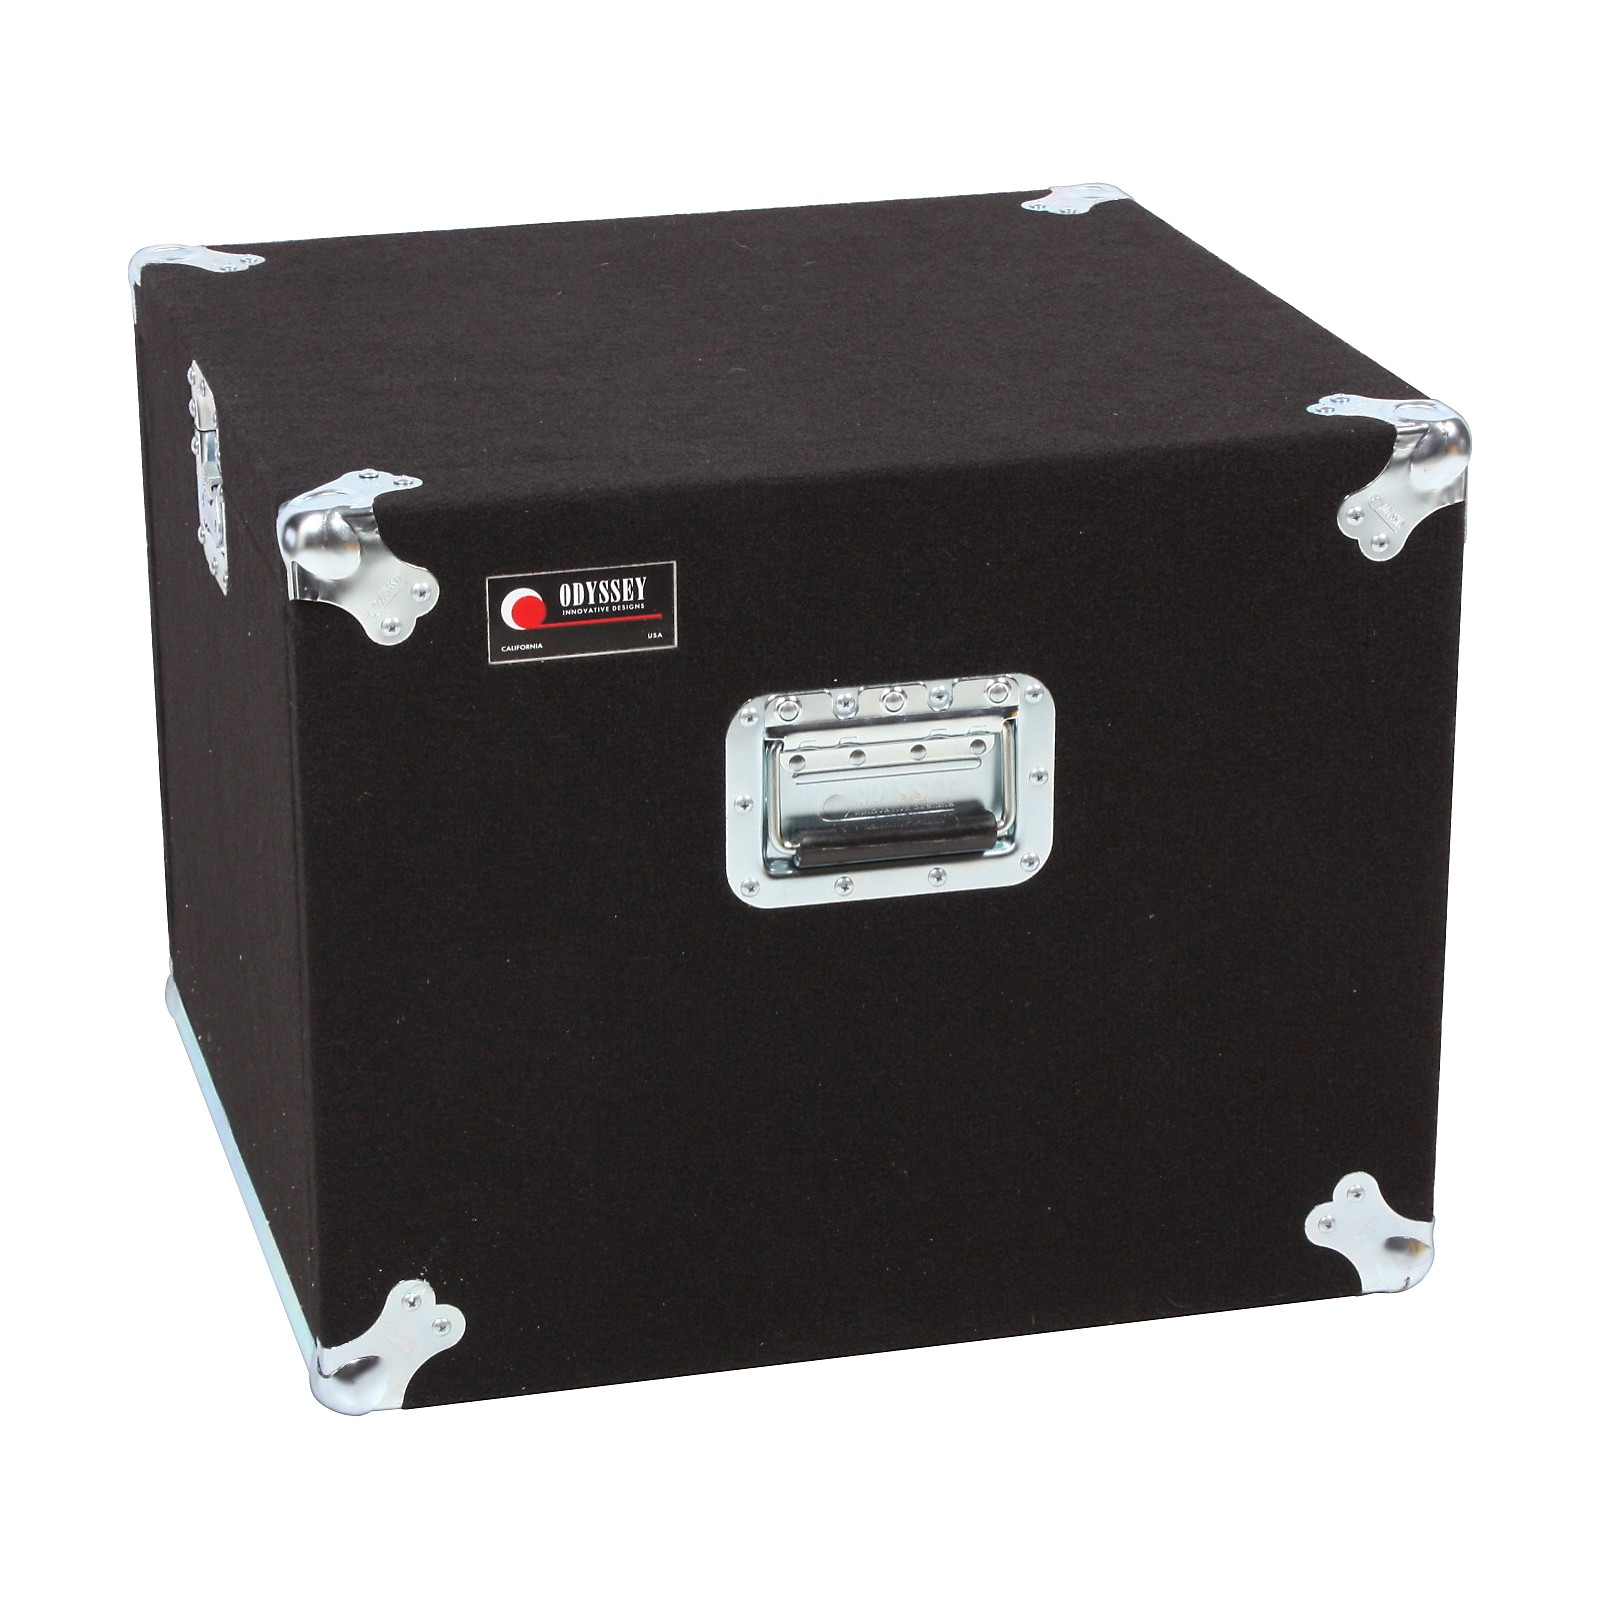 Odyssey CRP08W Carpeted Pro Rack with Wheels